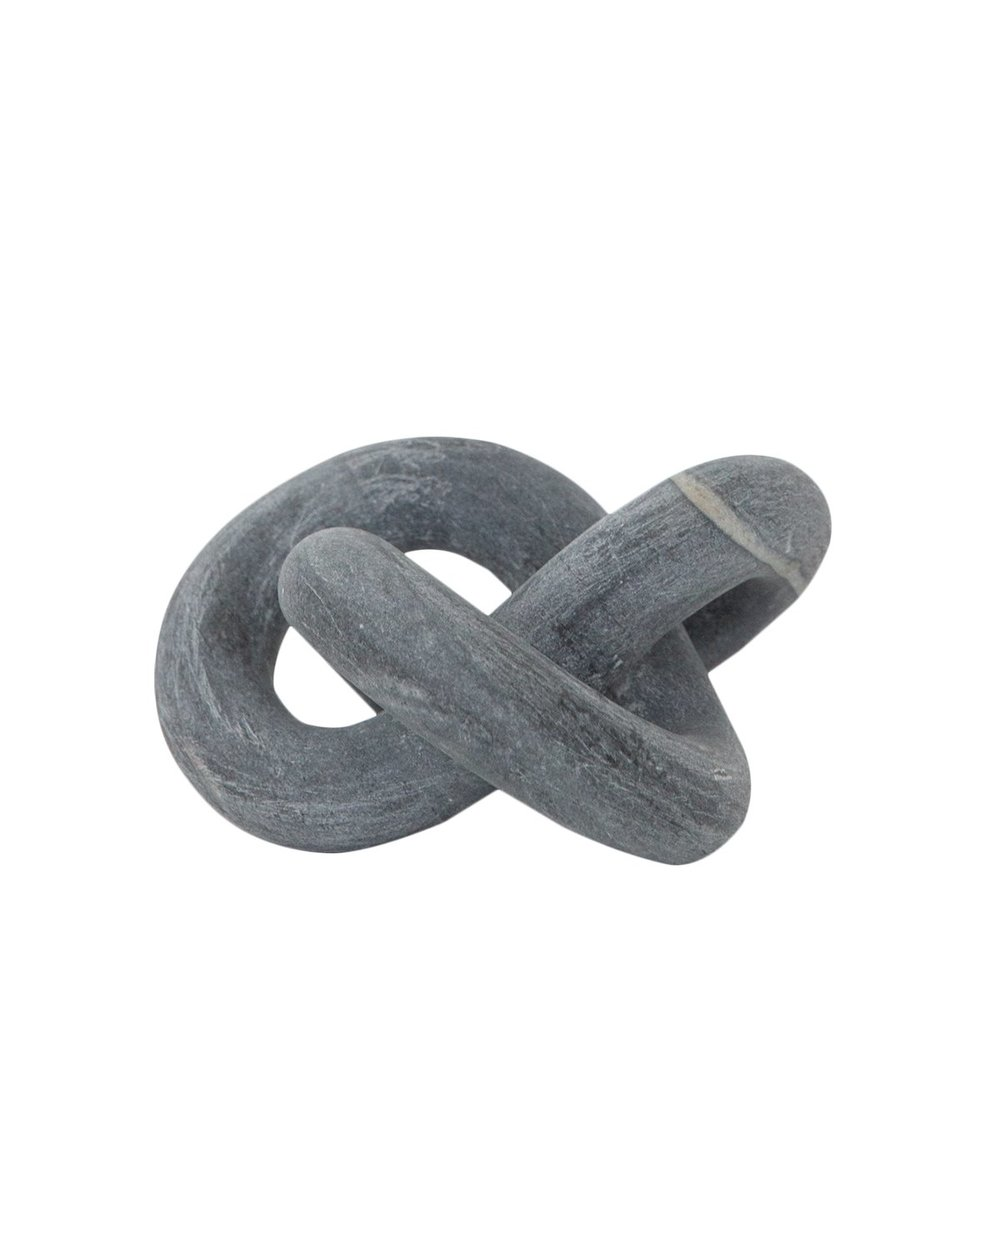 Marble_Knot_Object2.jpg